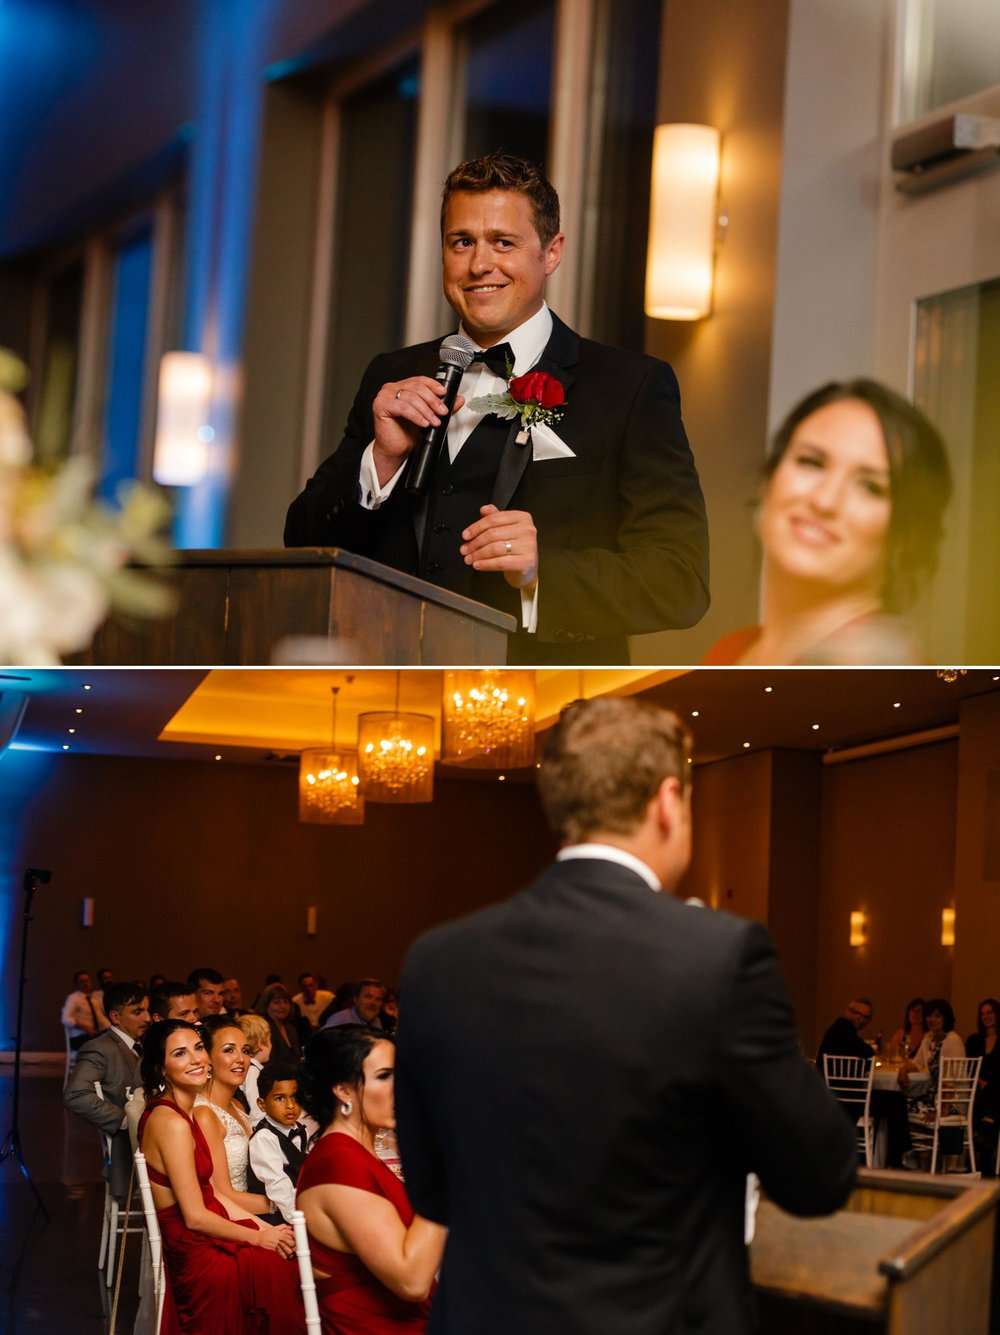 The groom saying his speech to his bride during their wedding reception at Le Belverdere